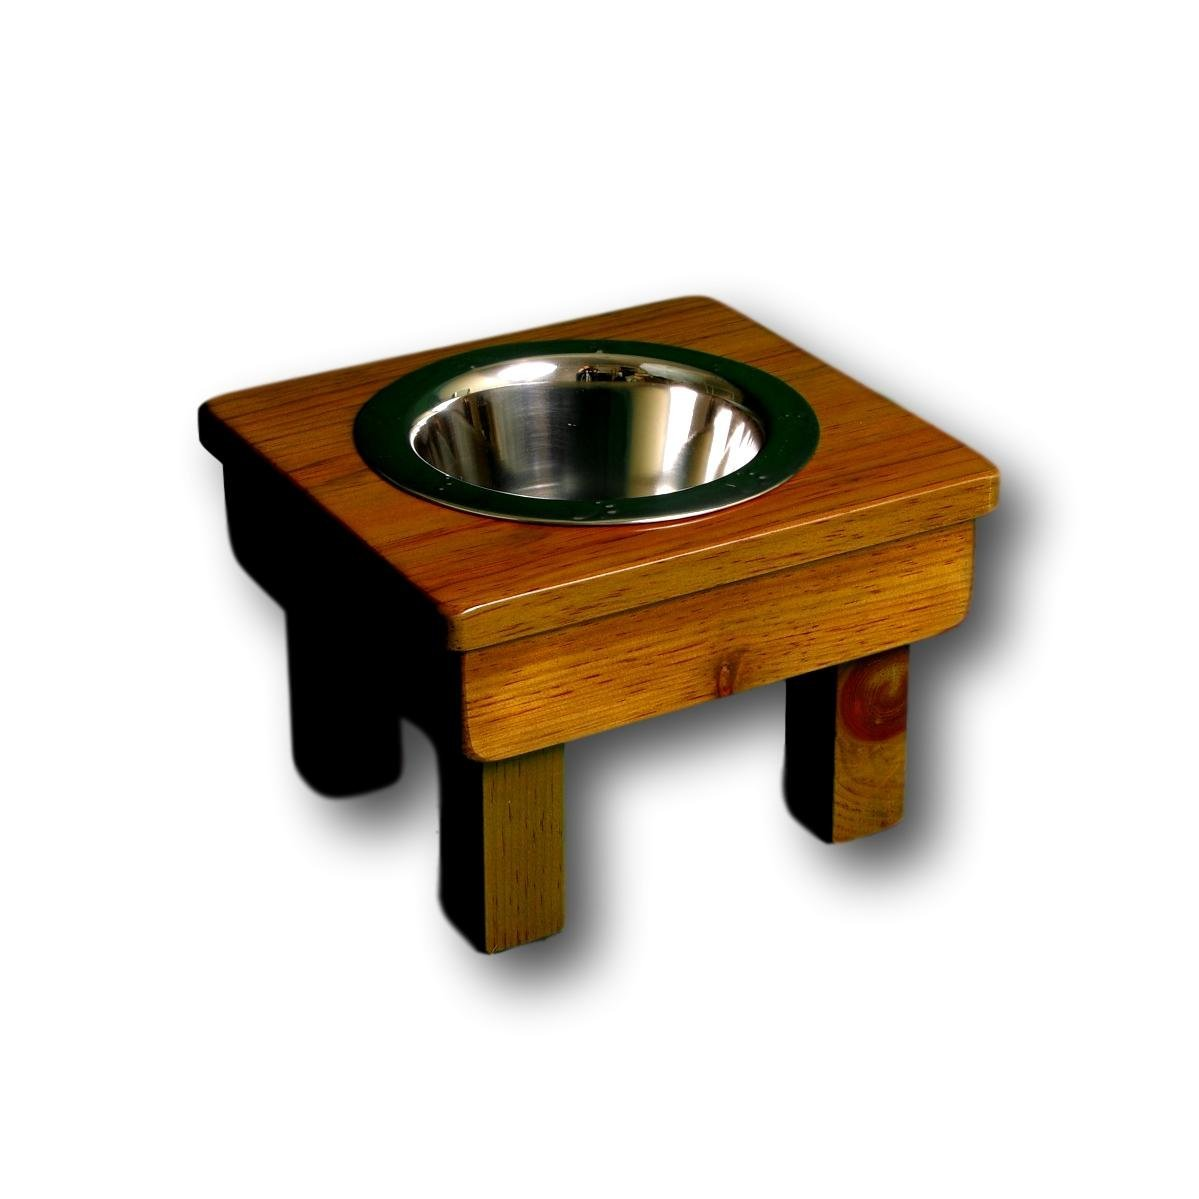 Raised Dog Bowl 7'' tall Small. Single Bowl Elevated Pet Feeder Stand. with 1 quart embossed stainless steel bowl. Non-Toxic and Eco-Friendly, by Ozarks Fehr Trade Originals